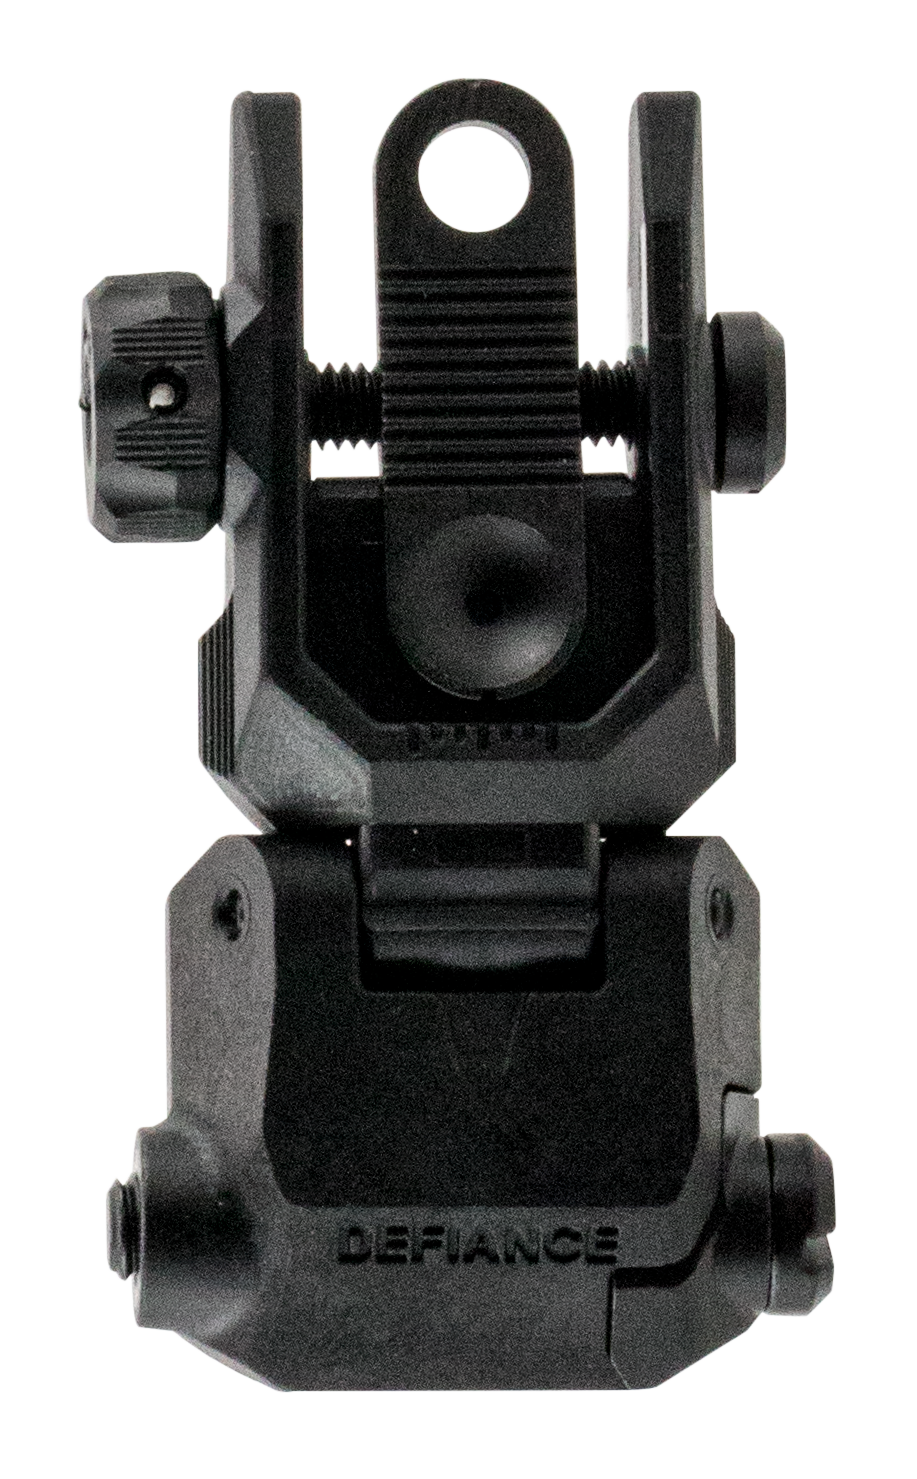 Kriss USA DAPRSBL00 Defiance Rear Flip-Up Sight - Rear AR Rifle Polymer Black